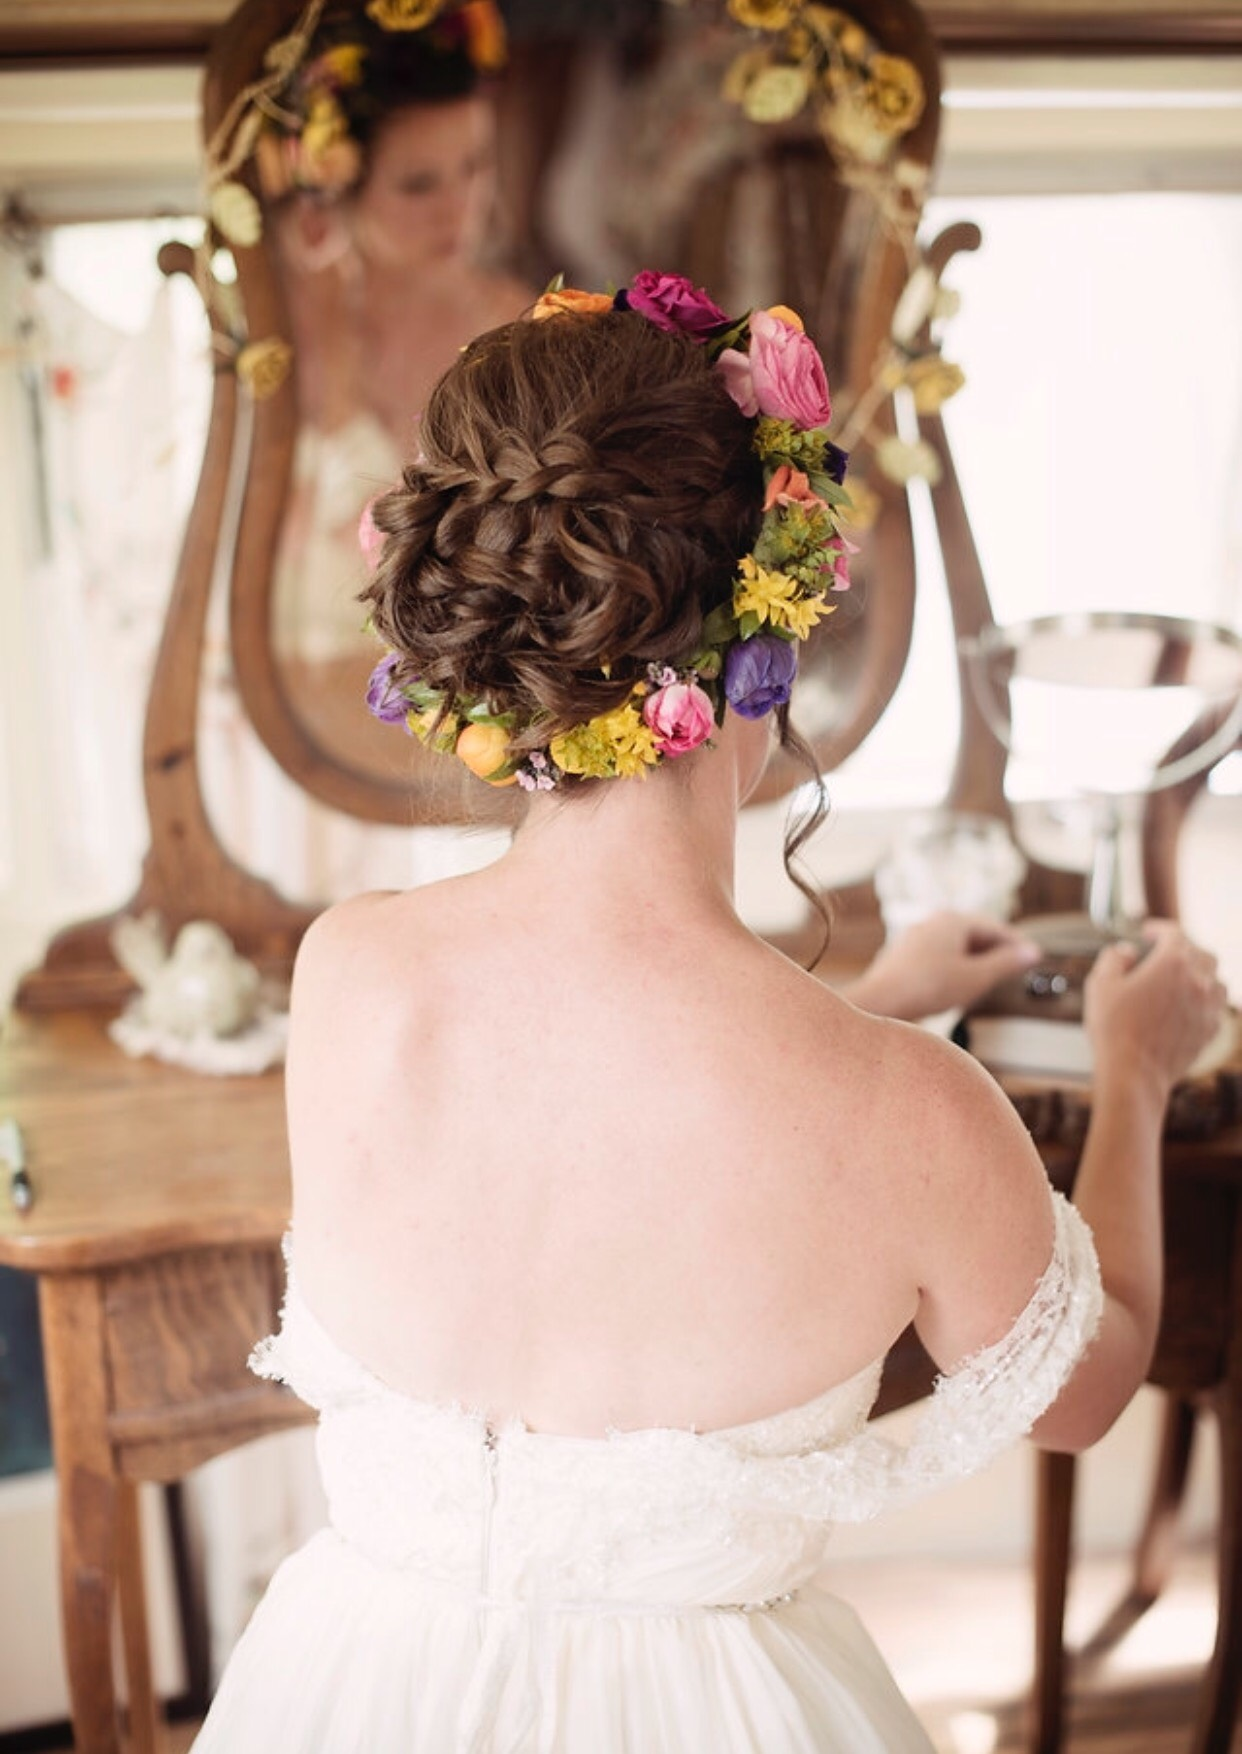 Denver-wedding-hairstylist-flower-crown-veil-Denver-bridal-hair